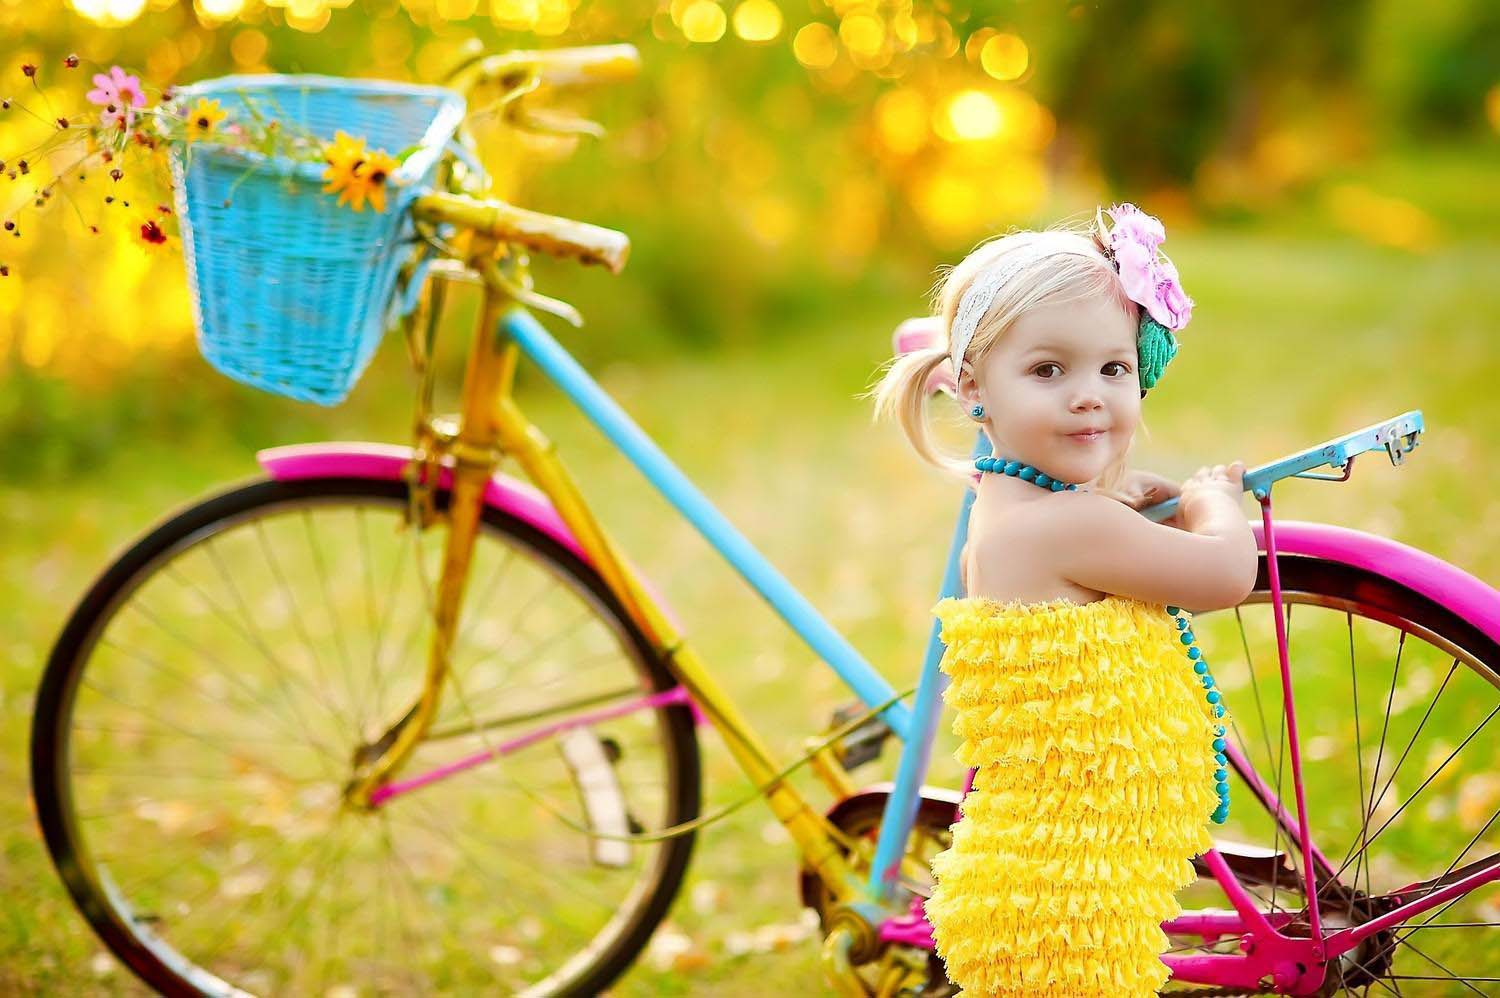 Cute Pari Doll Wallpapers Cute And Lovely Baby Pictures Free Download Love Images